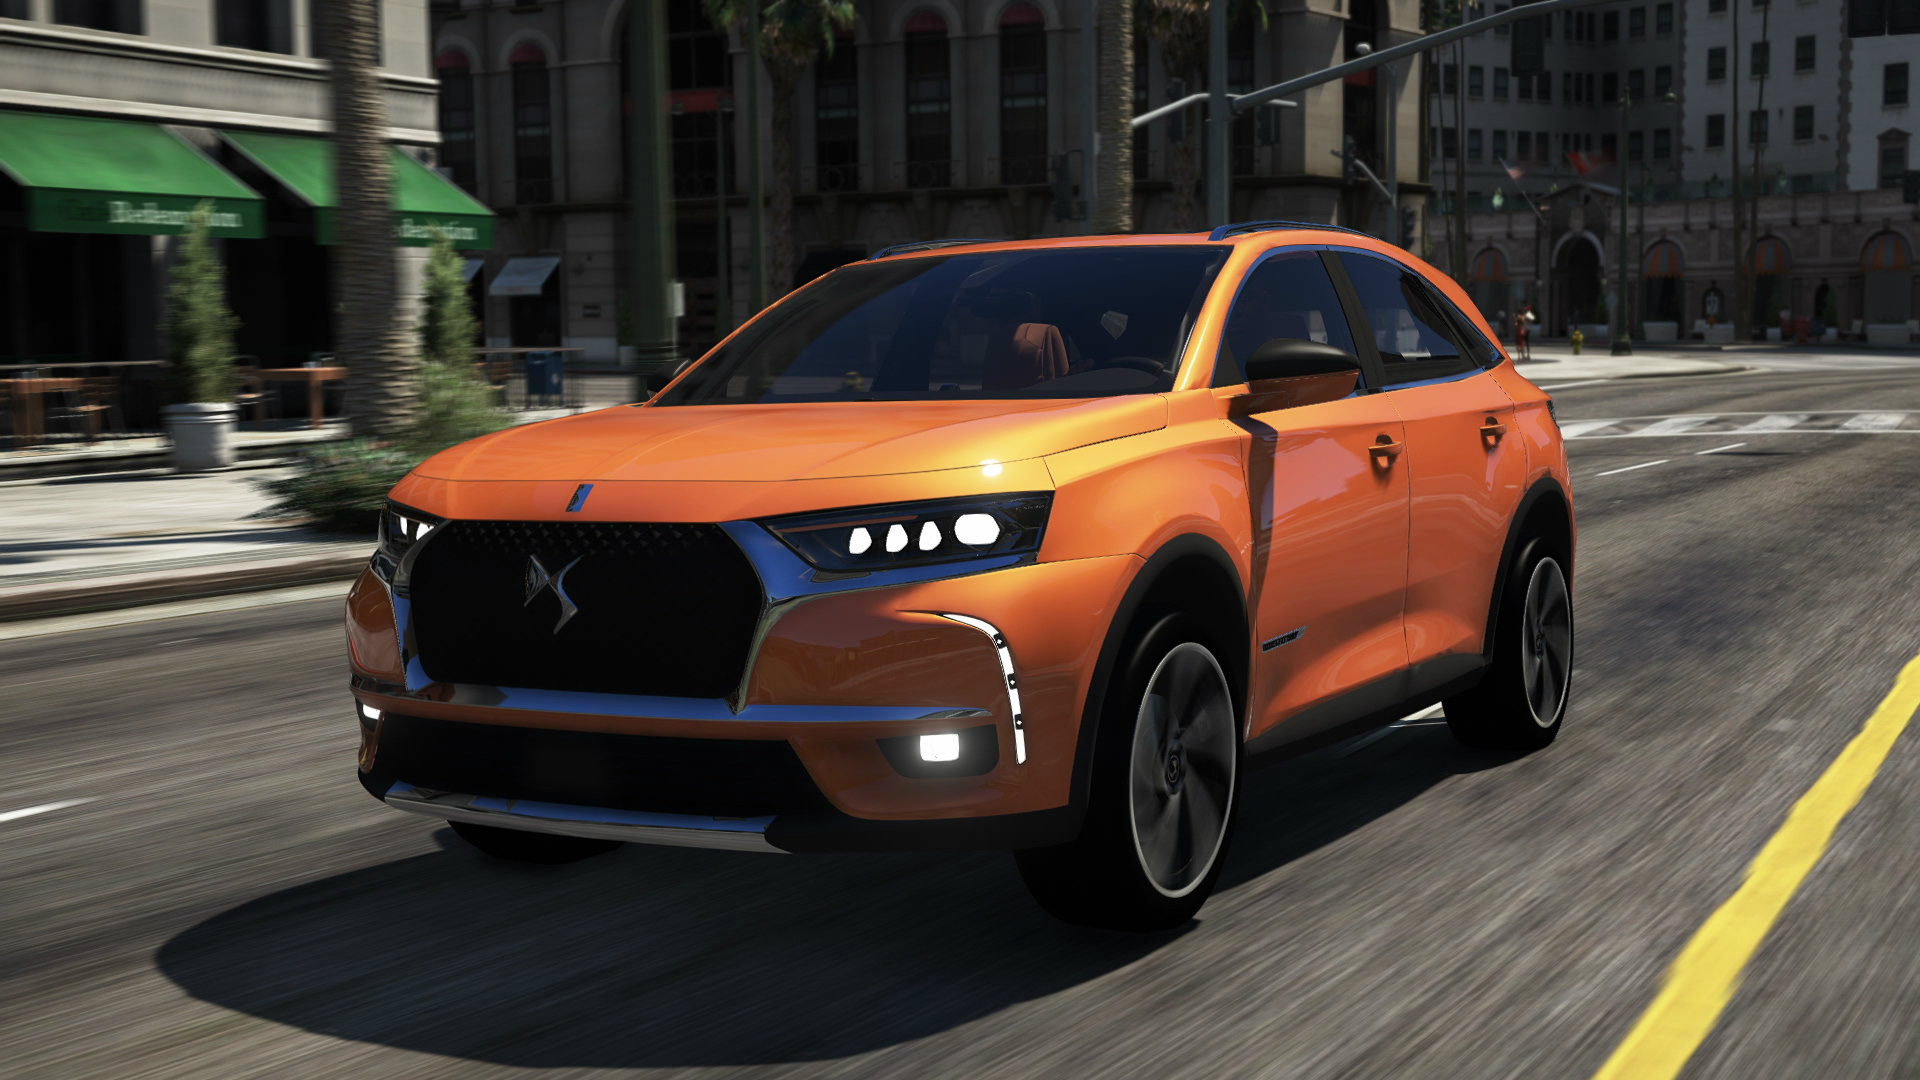 Citroen Ds7 Citroën Ds7 Crossback 2018 Opera Edition Add On Gta5 Mods